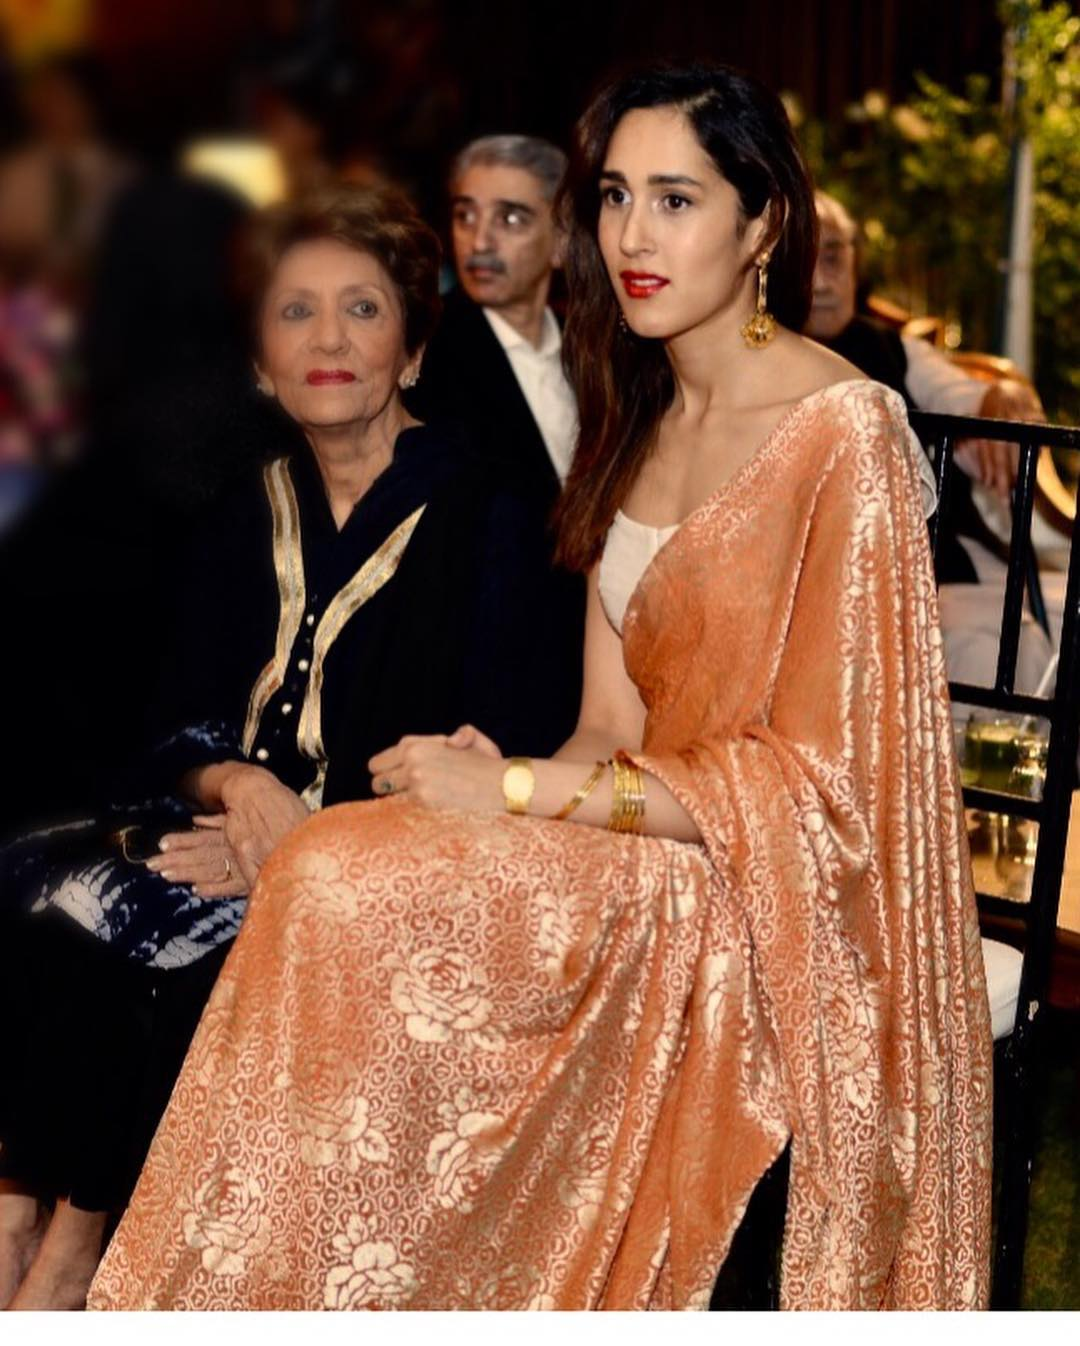 Beautiful Pictures Of Mira Sethi With Her Fiance At A